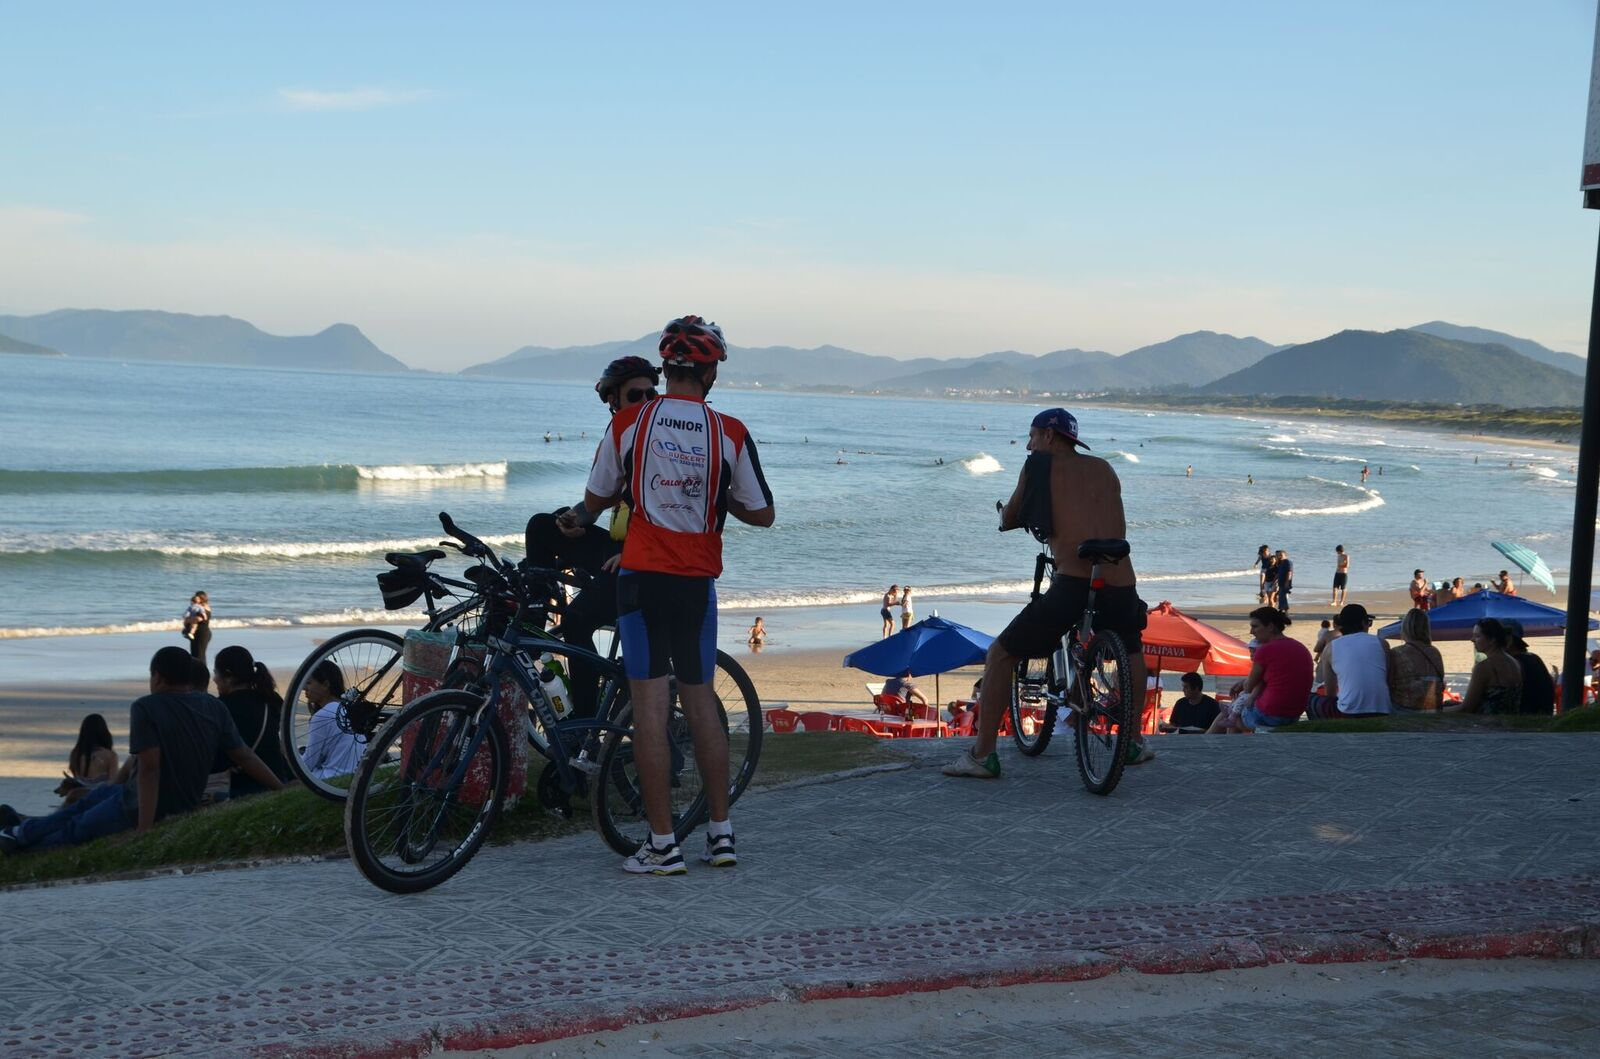 Santa Catarina bicycling